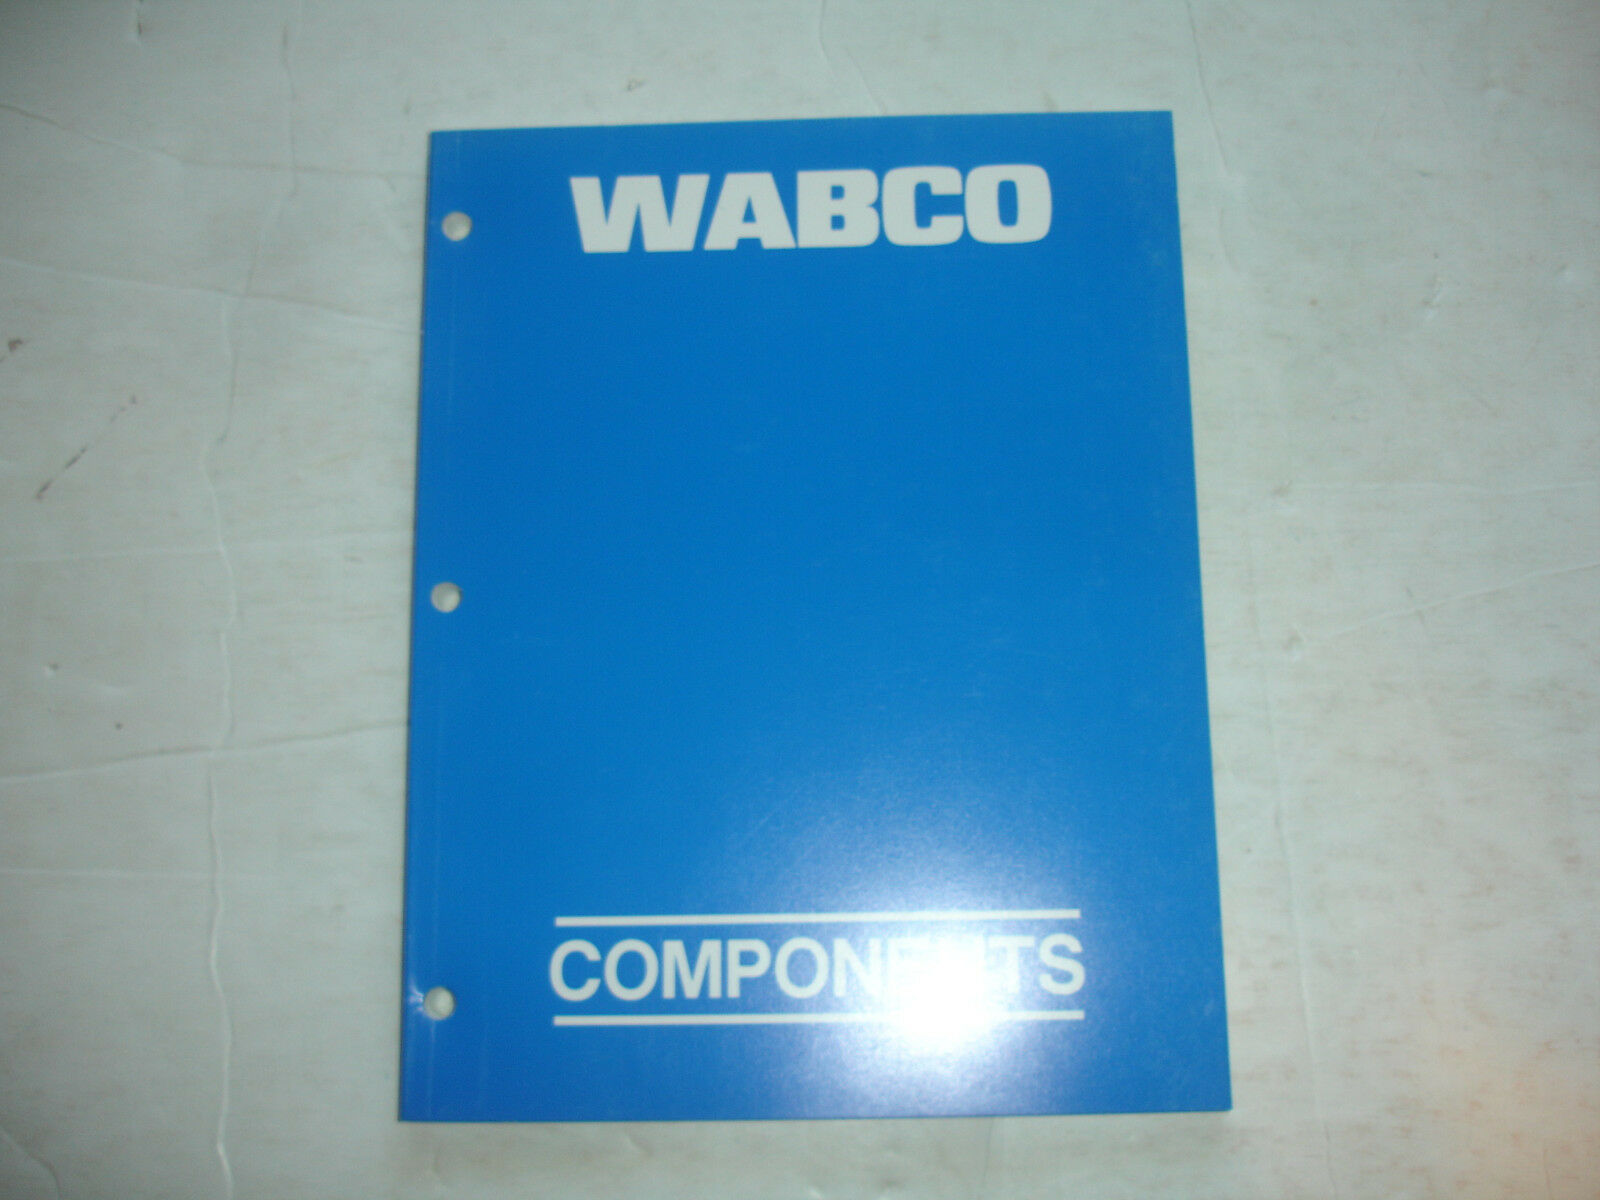 New Brake Air Clutch Wabco Components Manual Shop Service Mack Wiring Diagram Trucks Mid Liner 1 Of 5only Available